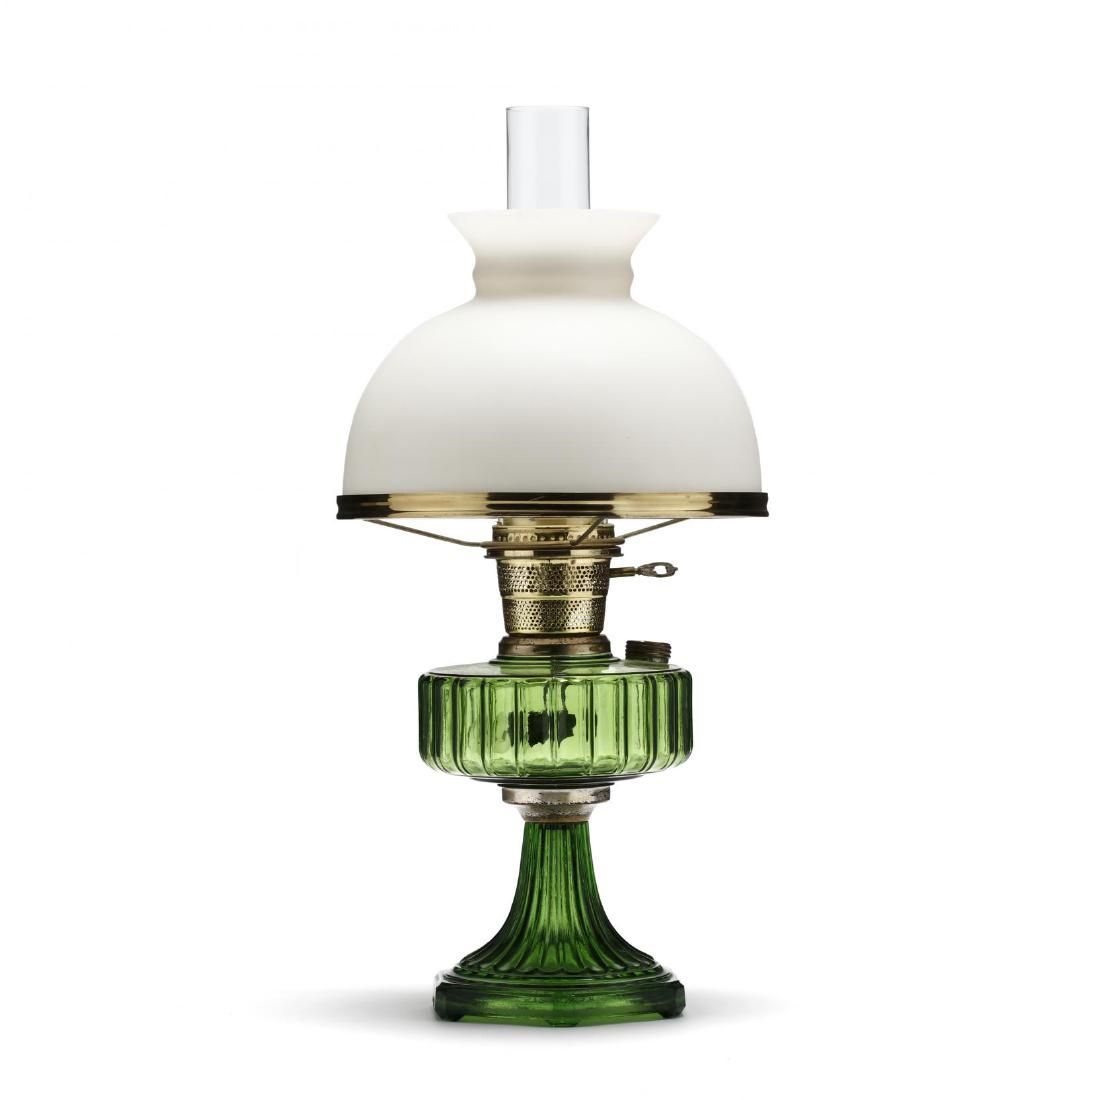 A Vintage Green Glass Oil Lamp